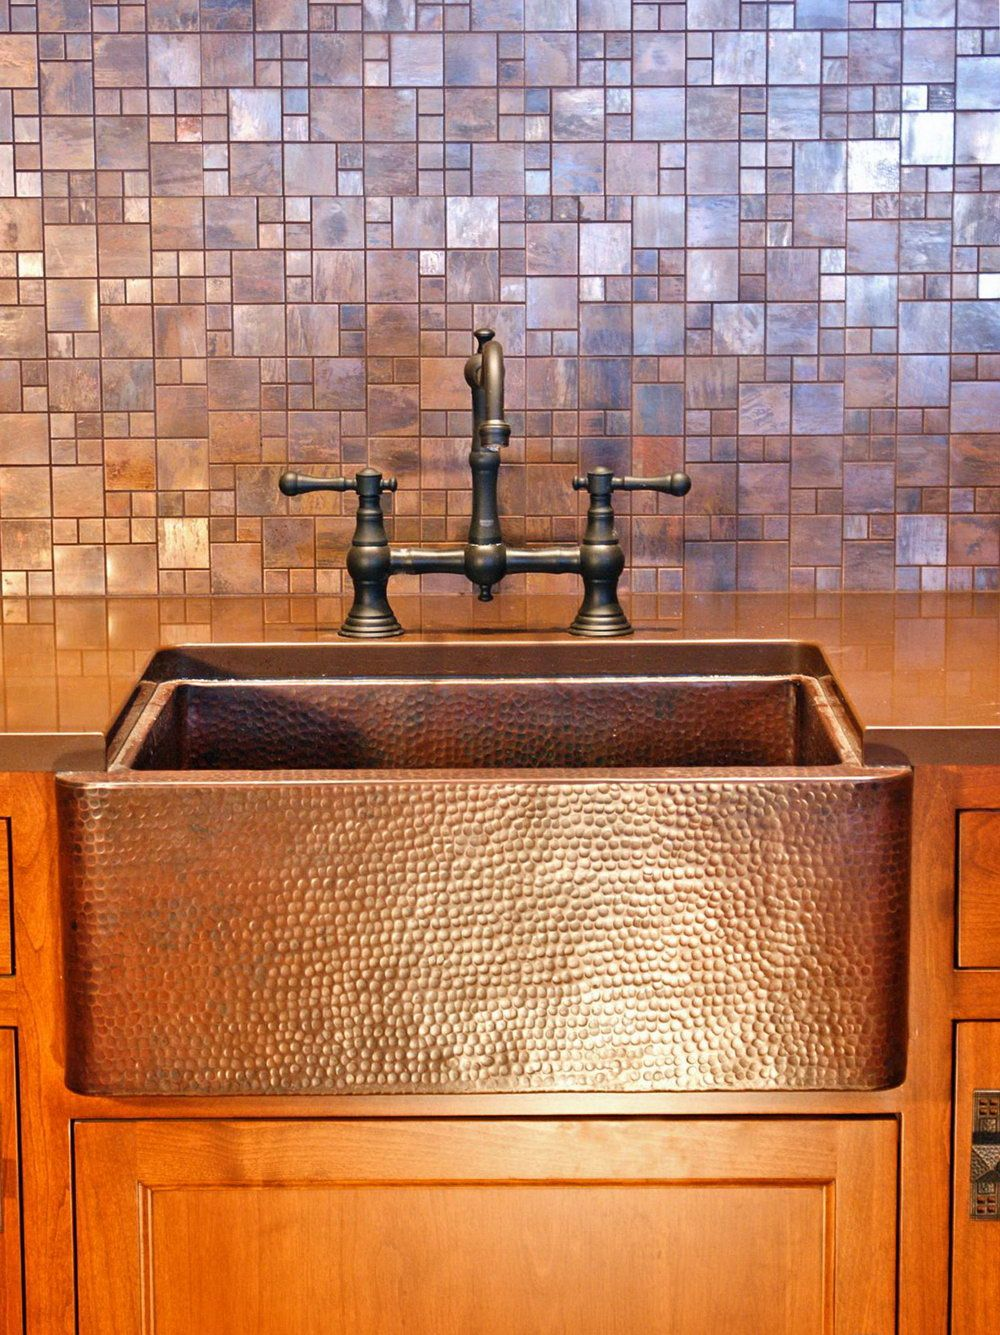 Copper Tiles For Kitchen Backsplash Trendy kitchen